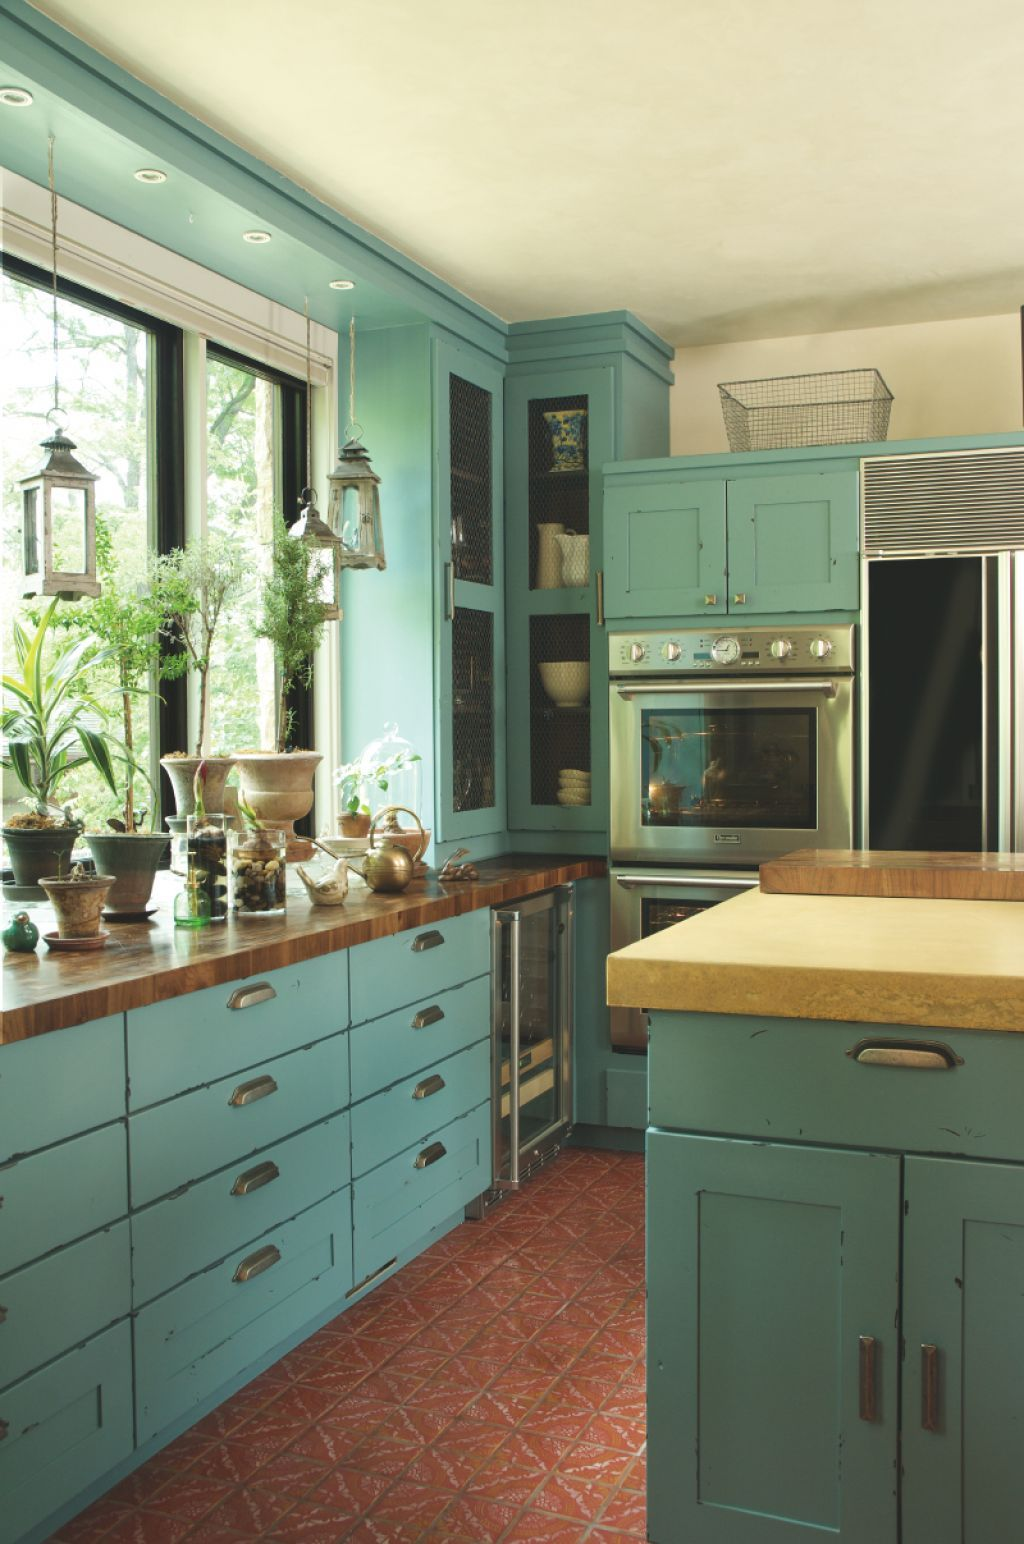 Decorate Your Kitchen With Turquoise Color Turquoise Kitchen Cabinets Kitchen Inspirations Kitchen Design